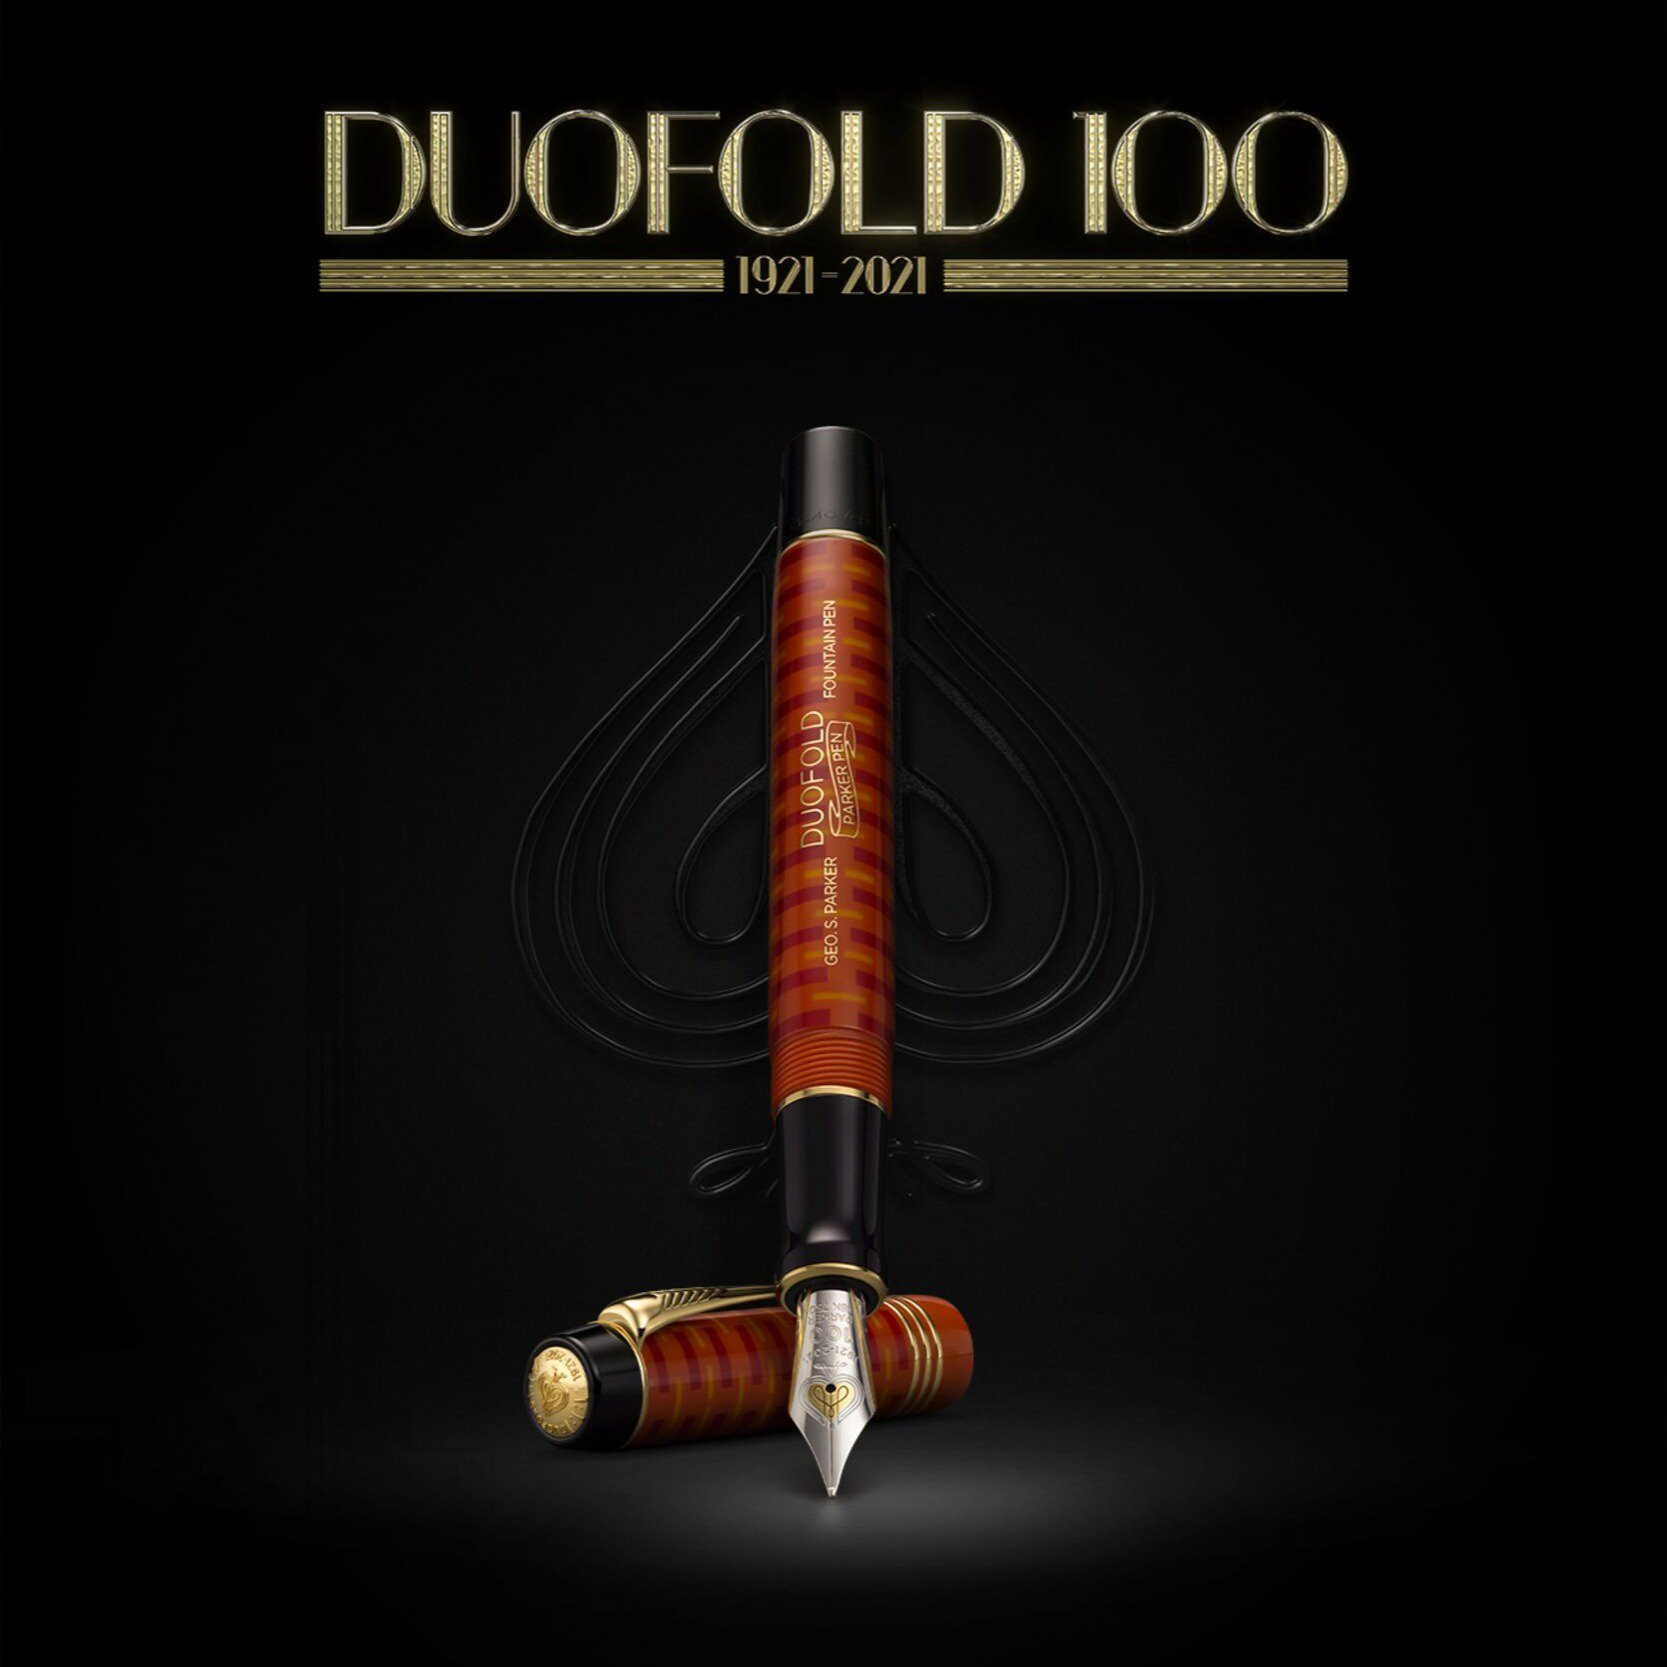 Duofold 100 Banner